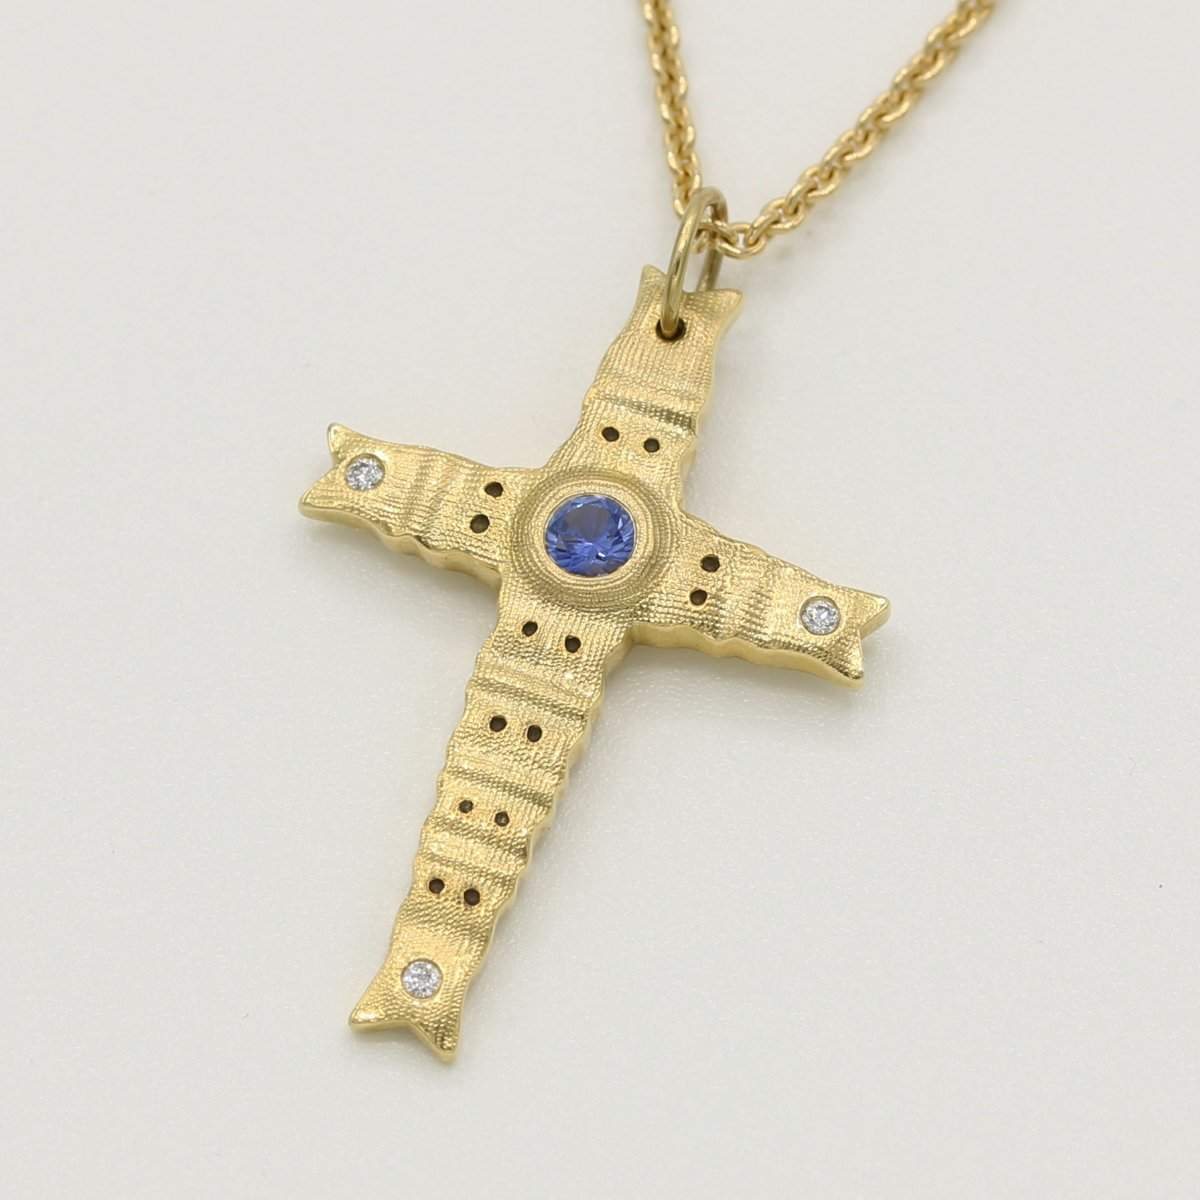 18K Spring Cross Sapphire & Diamond Pendant Necklace - M-10315-Alex Sepkus-Renee Taylor Gallery